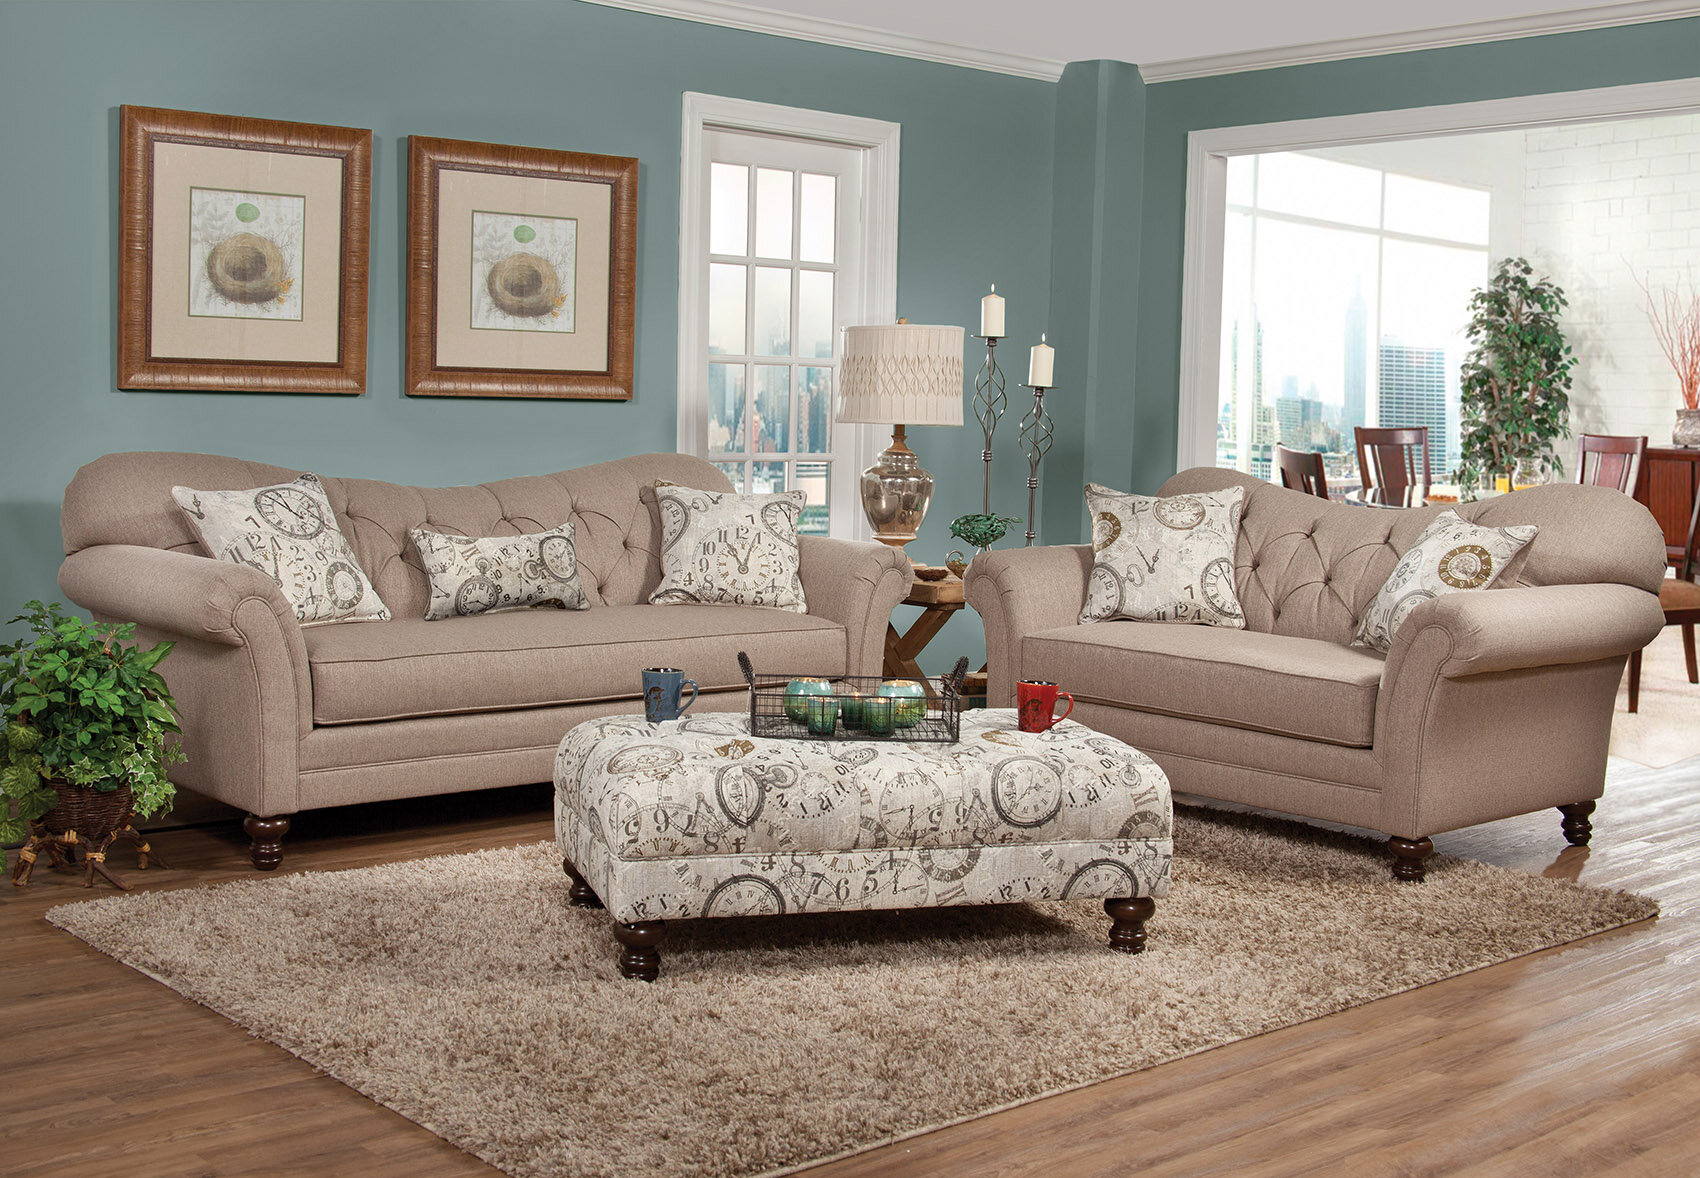 Larrick 8 Piece Living Room Set with regard to 15 Clever Ways How to Build 8 Piece Living Room Set